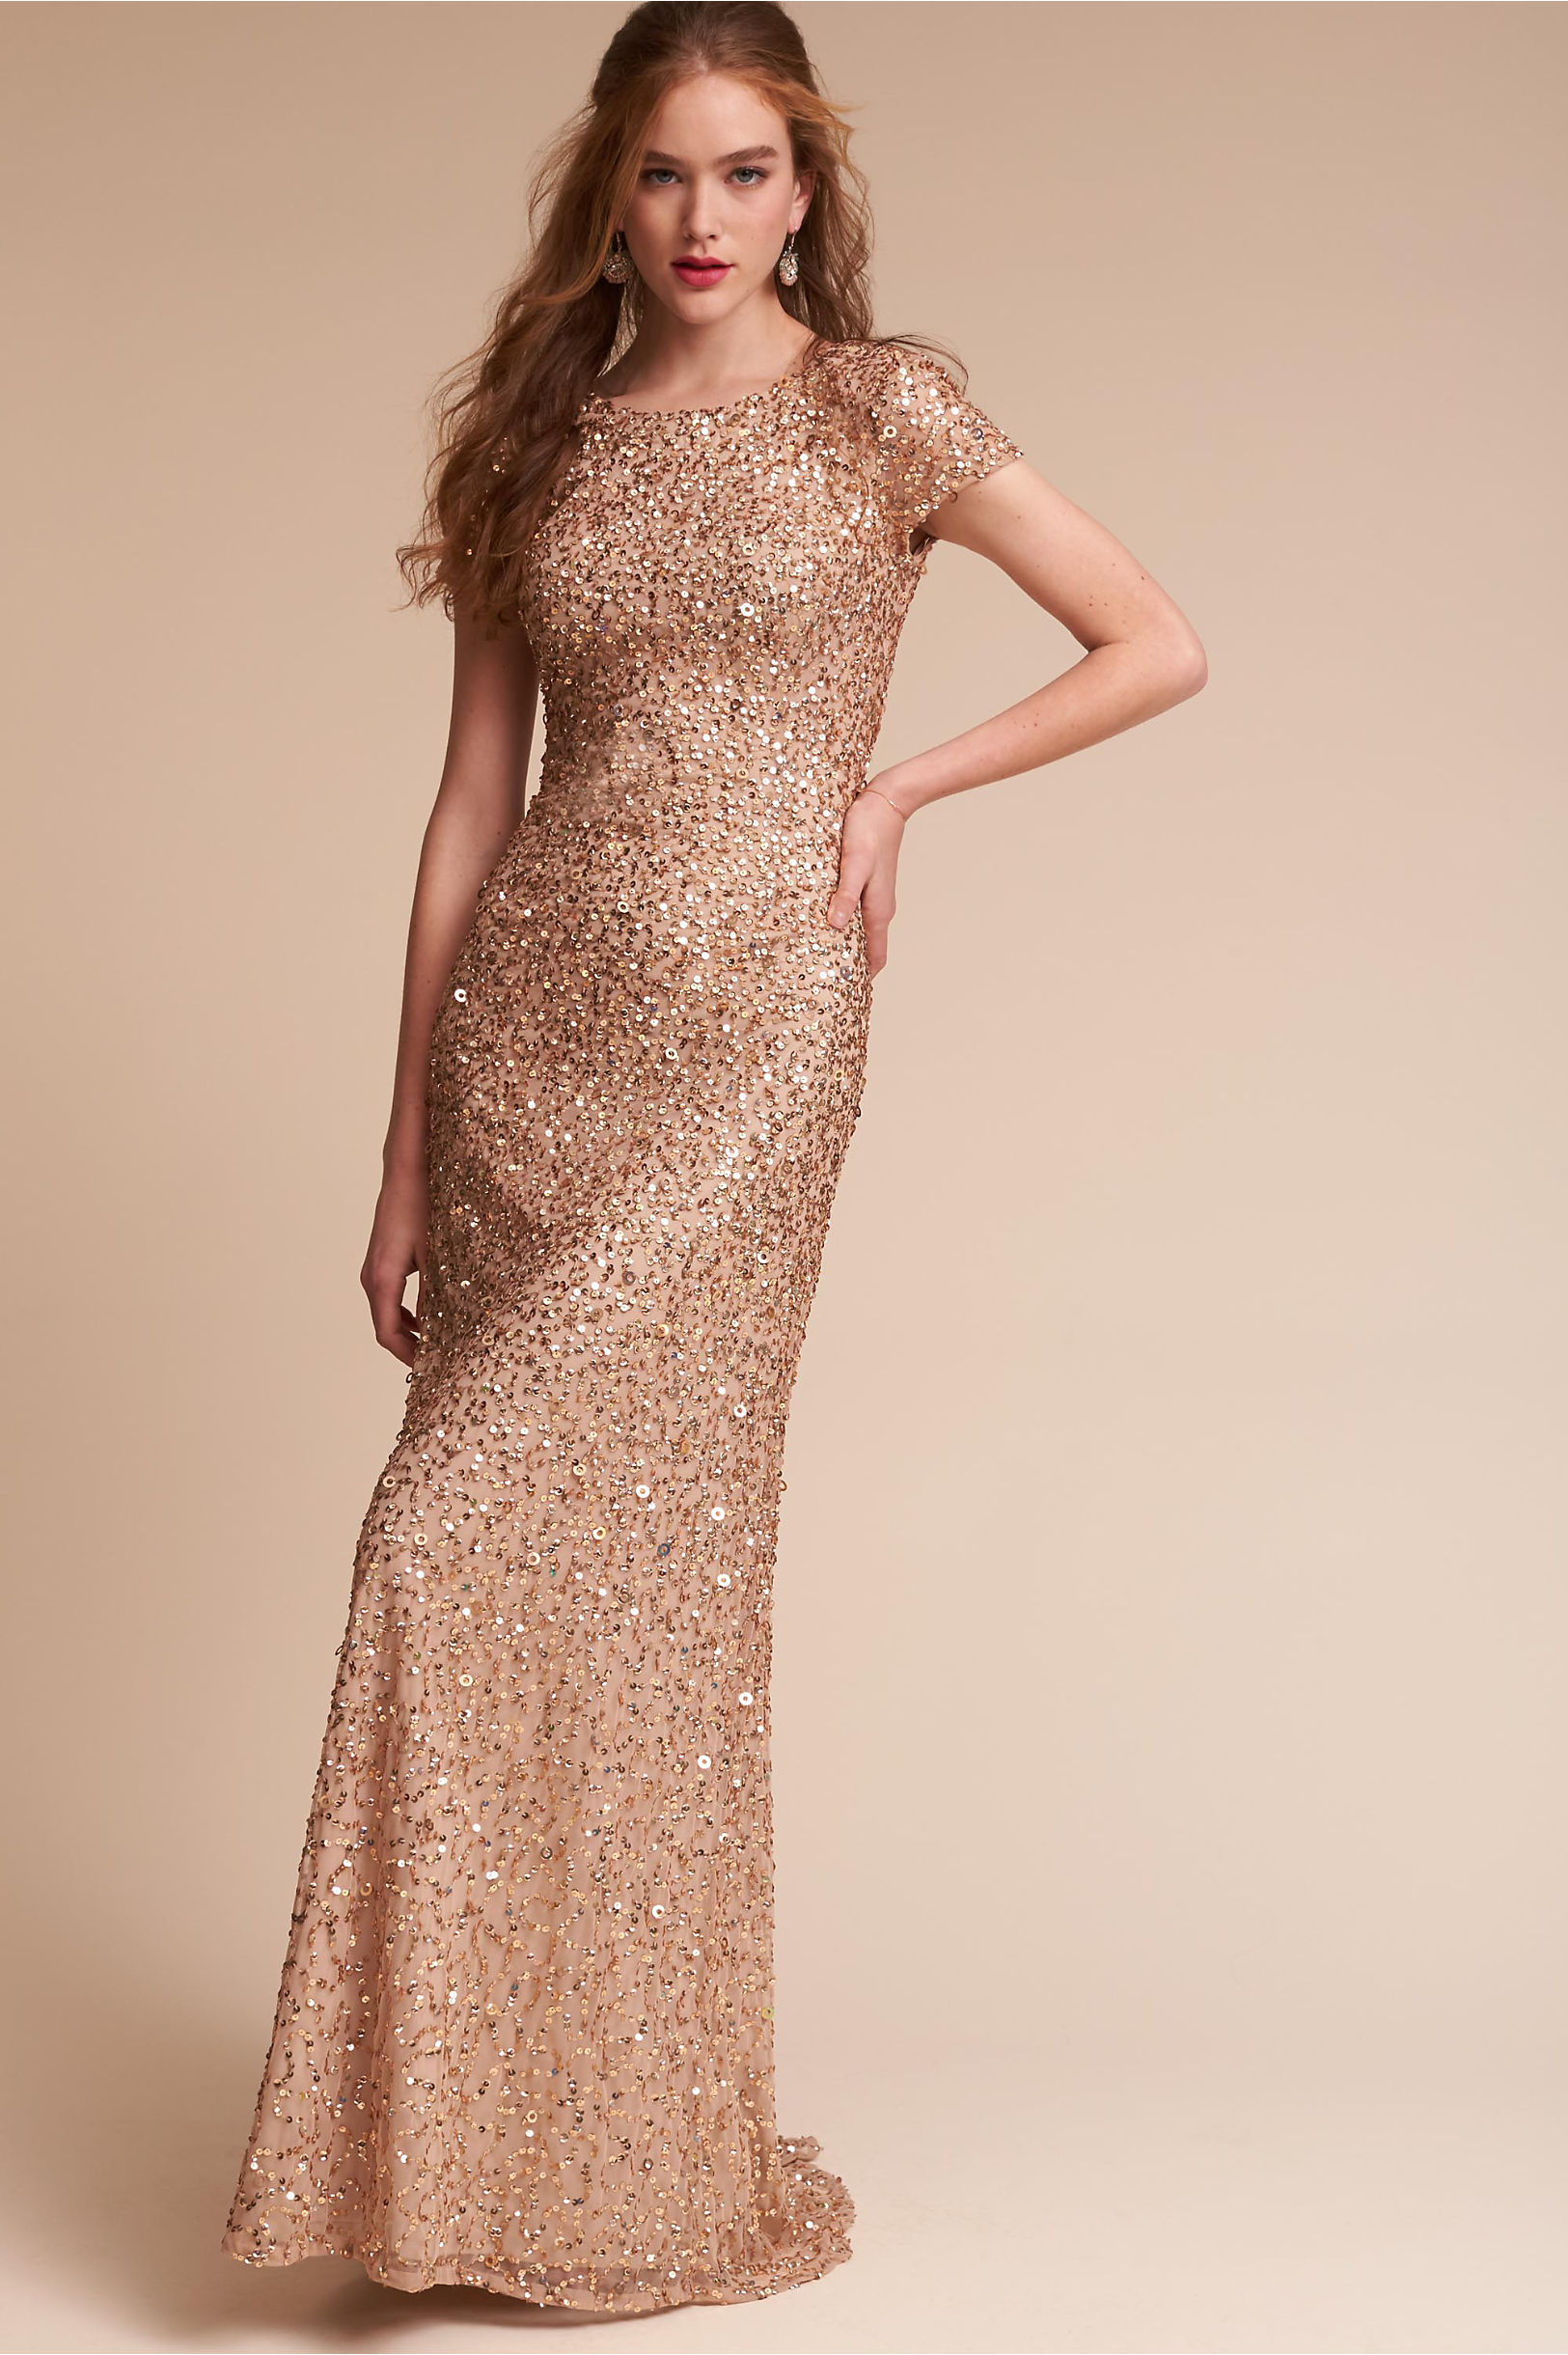 Lucent Dress in Sale | BHLDN